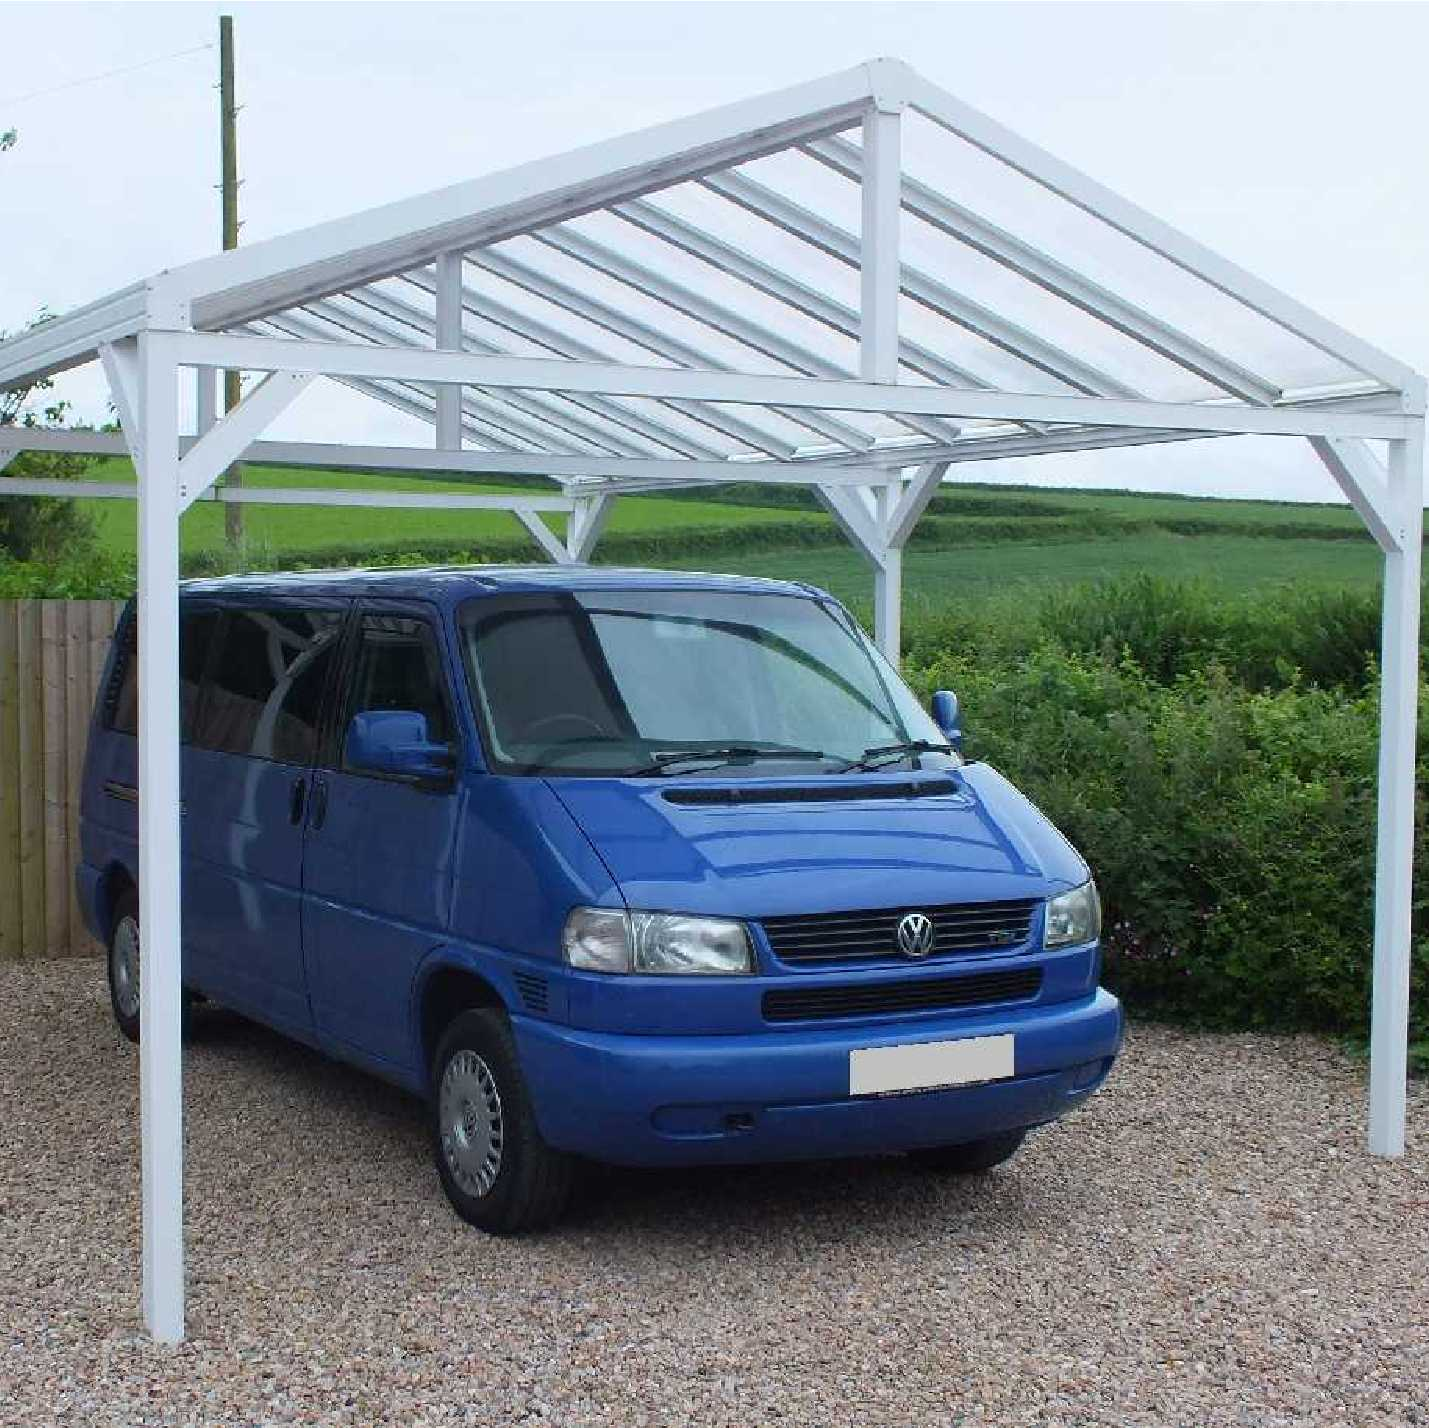 Omega Smart Free-Standing, Gable-Roof (type 1) Canopy with 16mm Polycarbonate Glazing - 5.2m (W) x 3.5m (P), (6) Supporting Posts